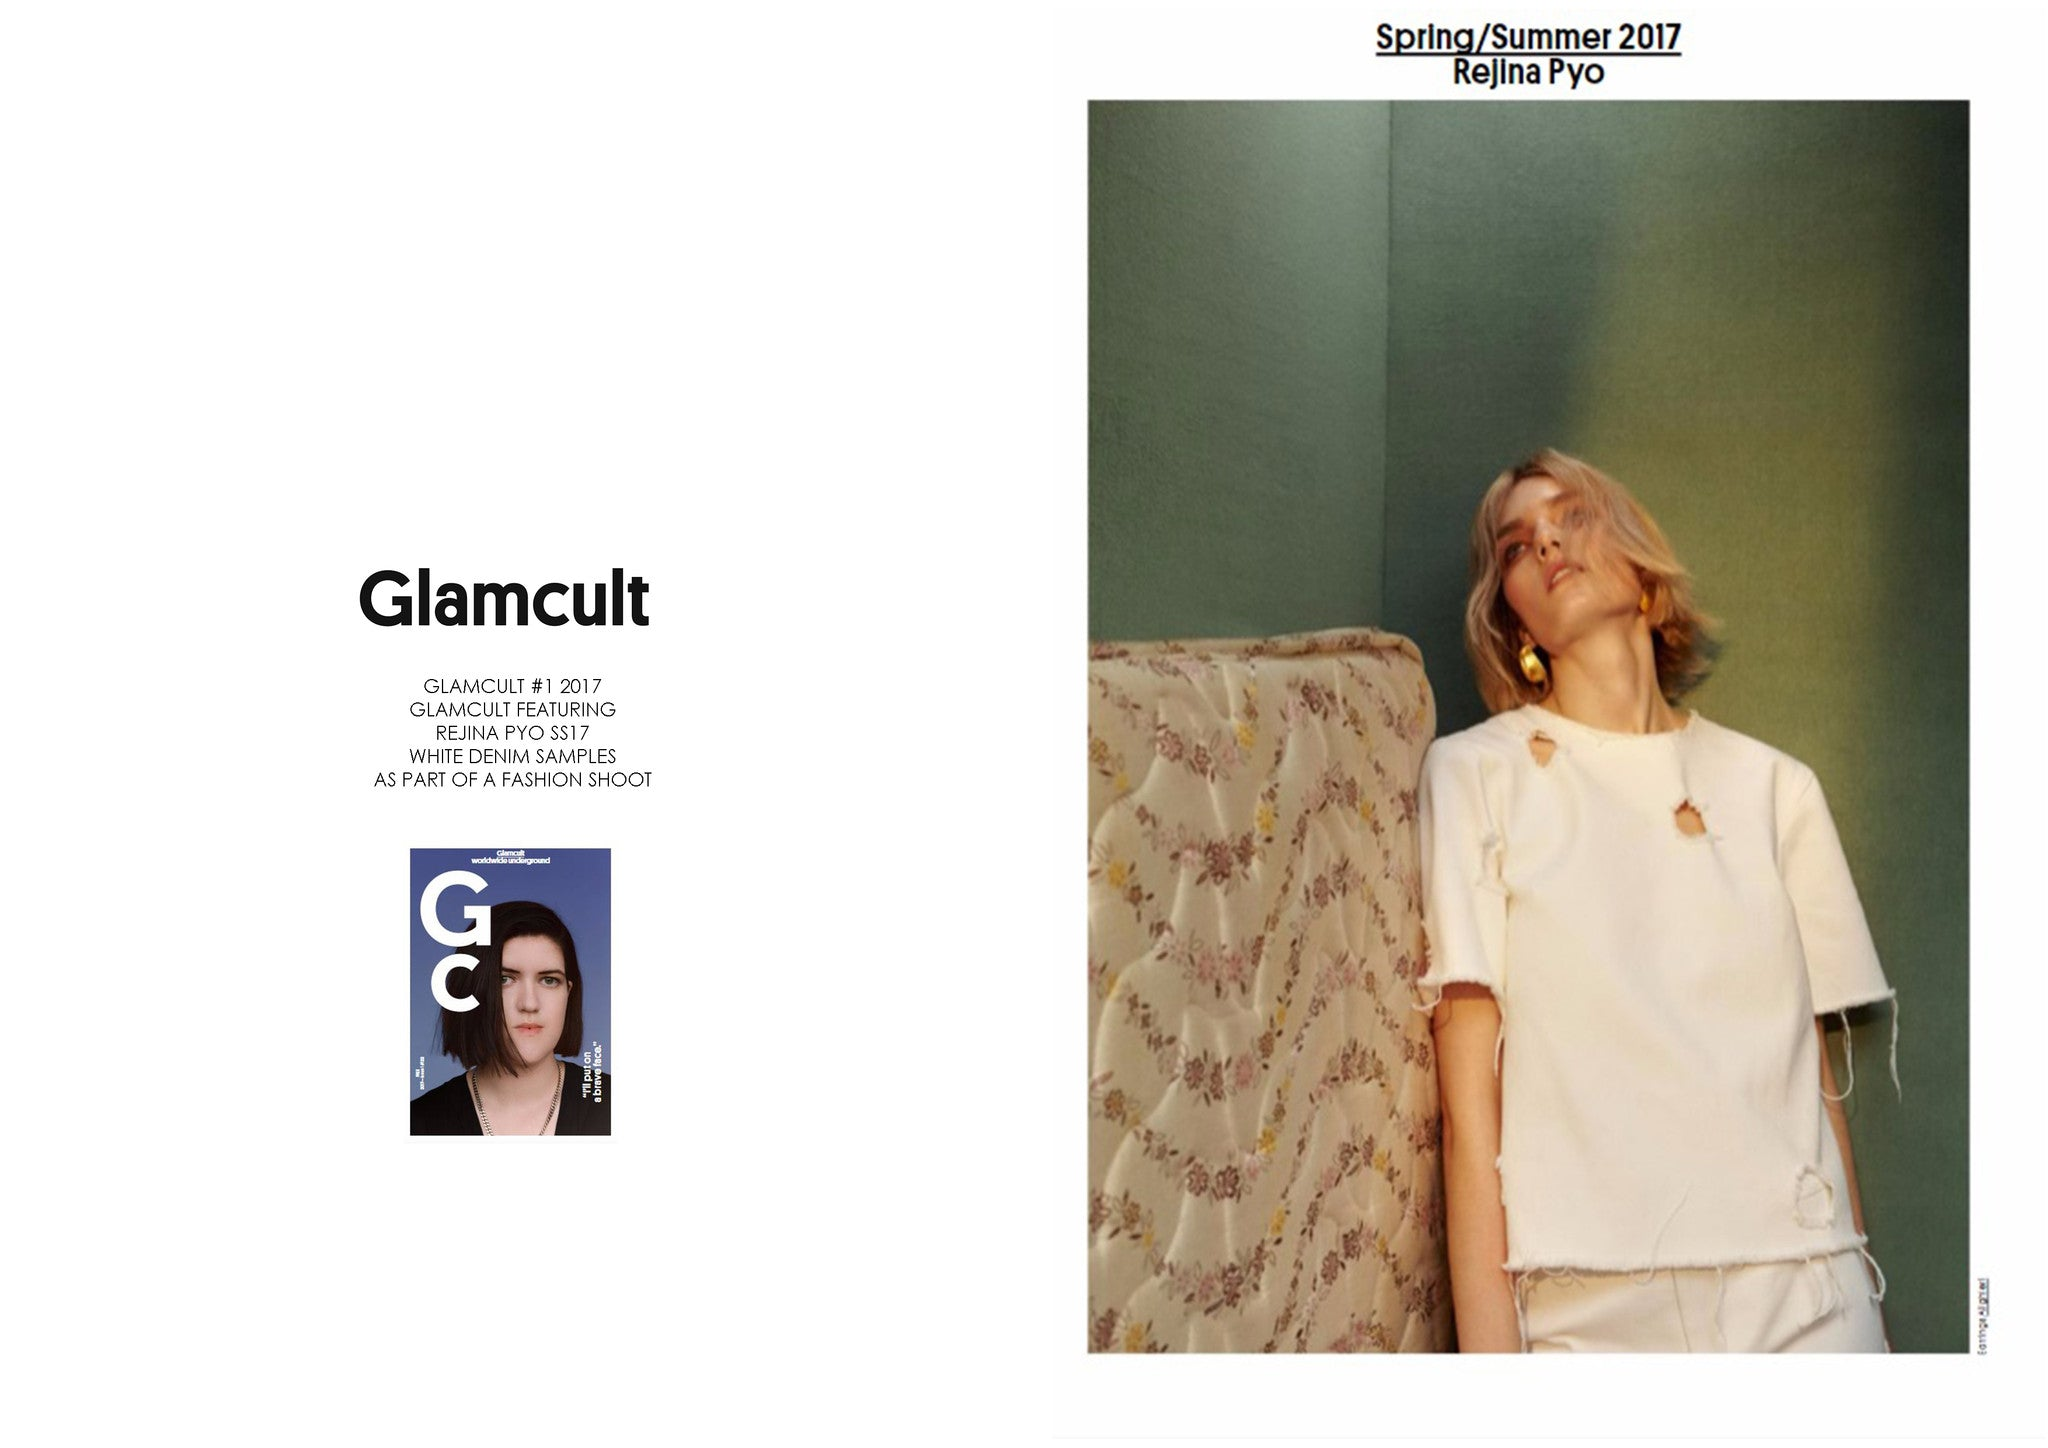 GLAMCULT #1: FEATURING REJINA PYO SS17 WHITE DENIM SAMPLES AS PART OF A FASHION SHOOT